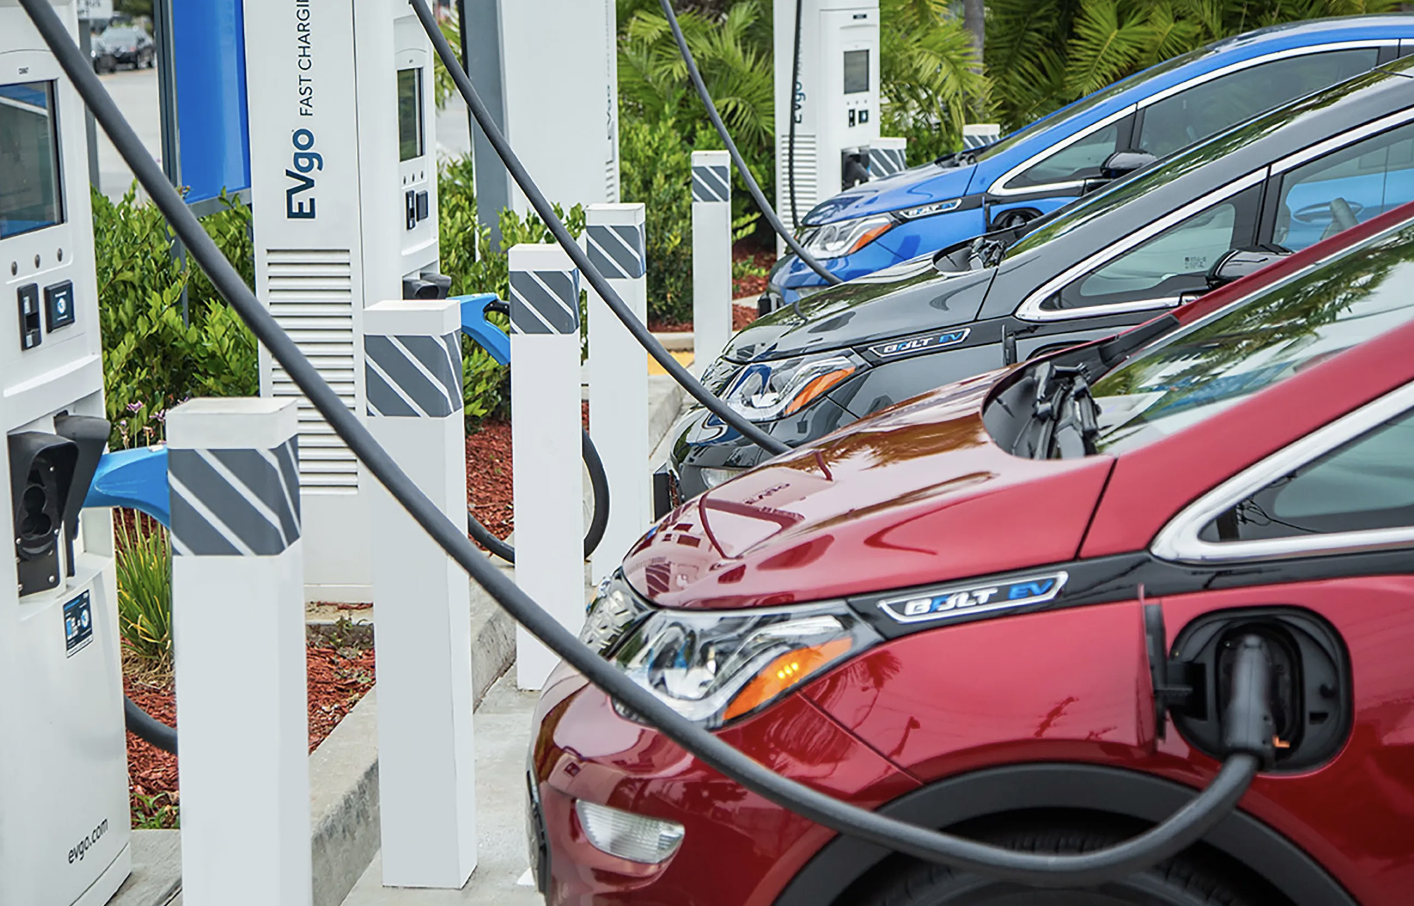 New Electric Vehicle Chargers and Hydrogen Fuelling Stations Coming to British Columbia